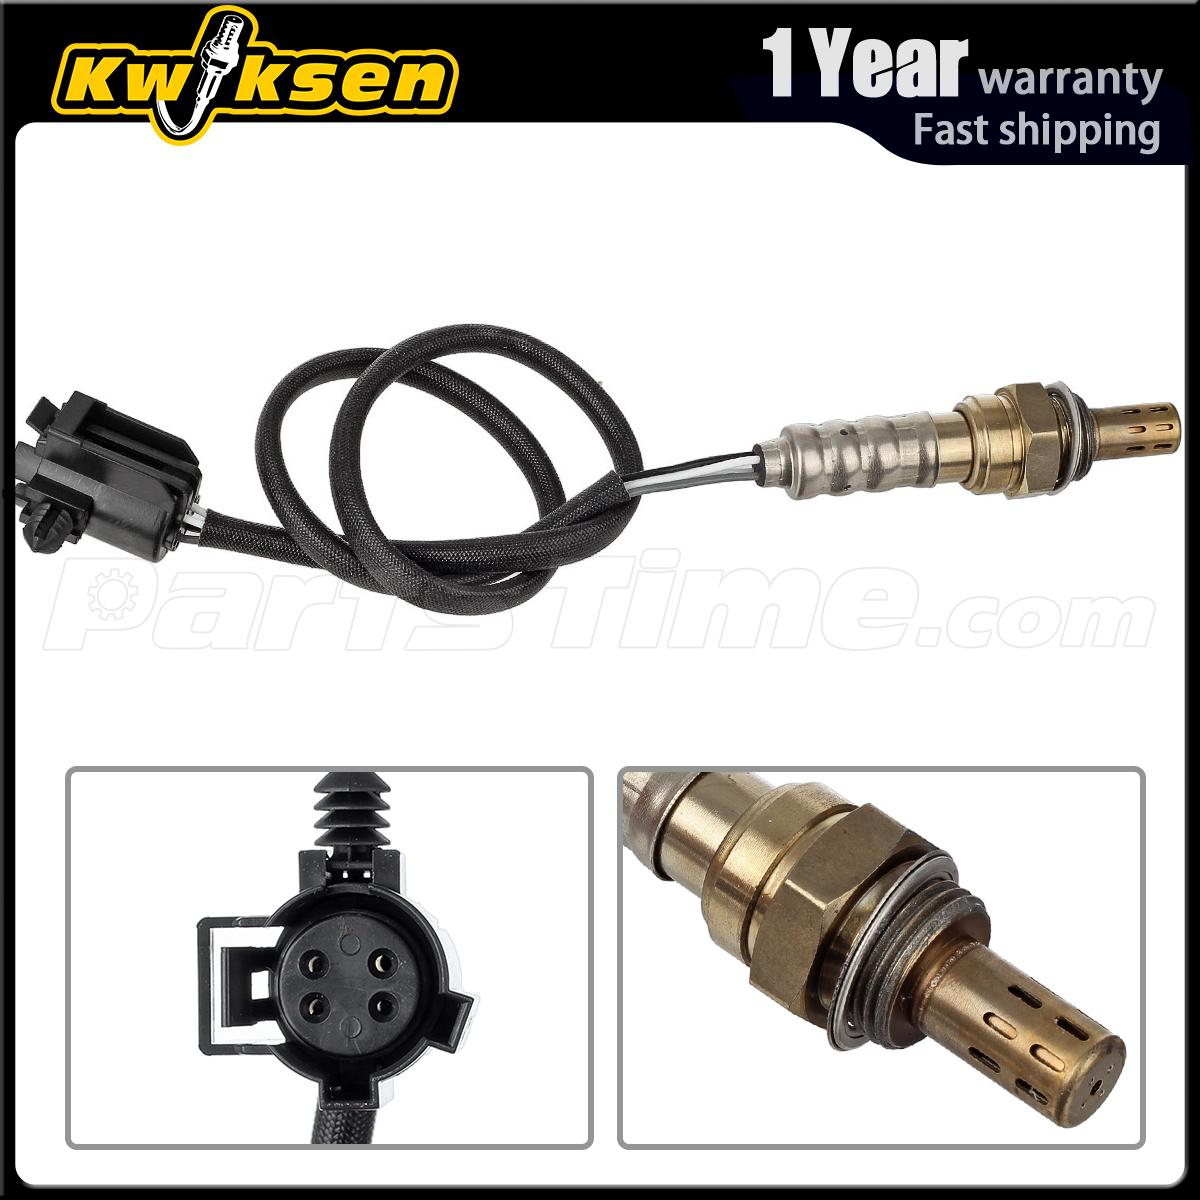 2003 Dodge Caravan: 234-4010 Oxygen O2 Sensor Downstream For 2001-2003 Dodge